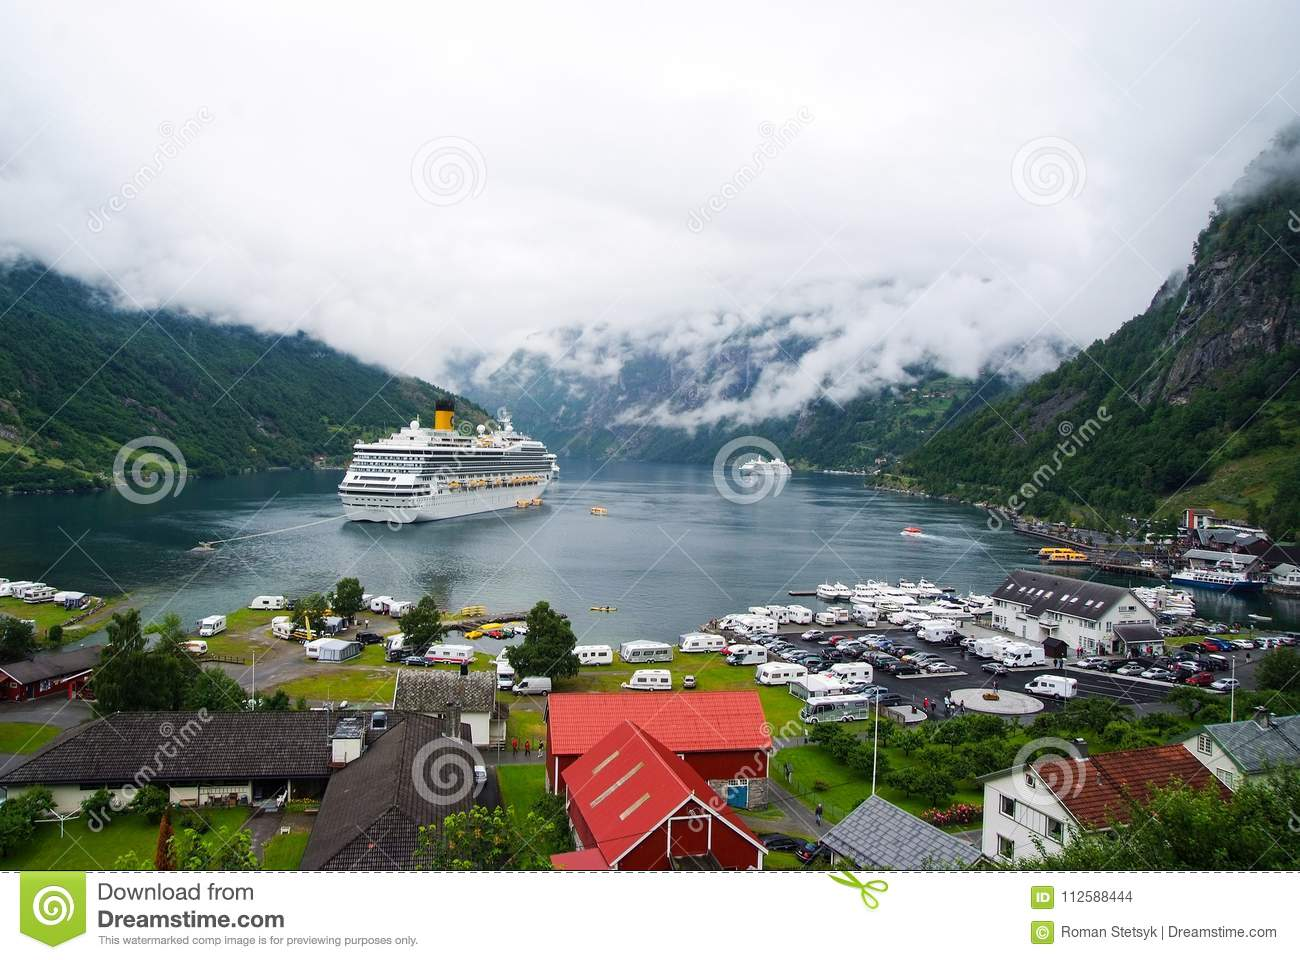 Geiranger, Norway - January 25, 2010: ship in norwegian fjord on cloudy sky. Ocean liner in village harbor. Travel destination, to